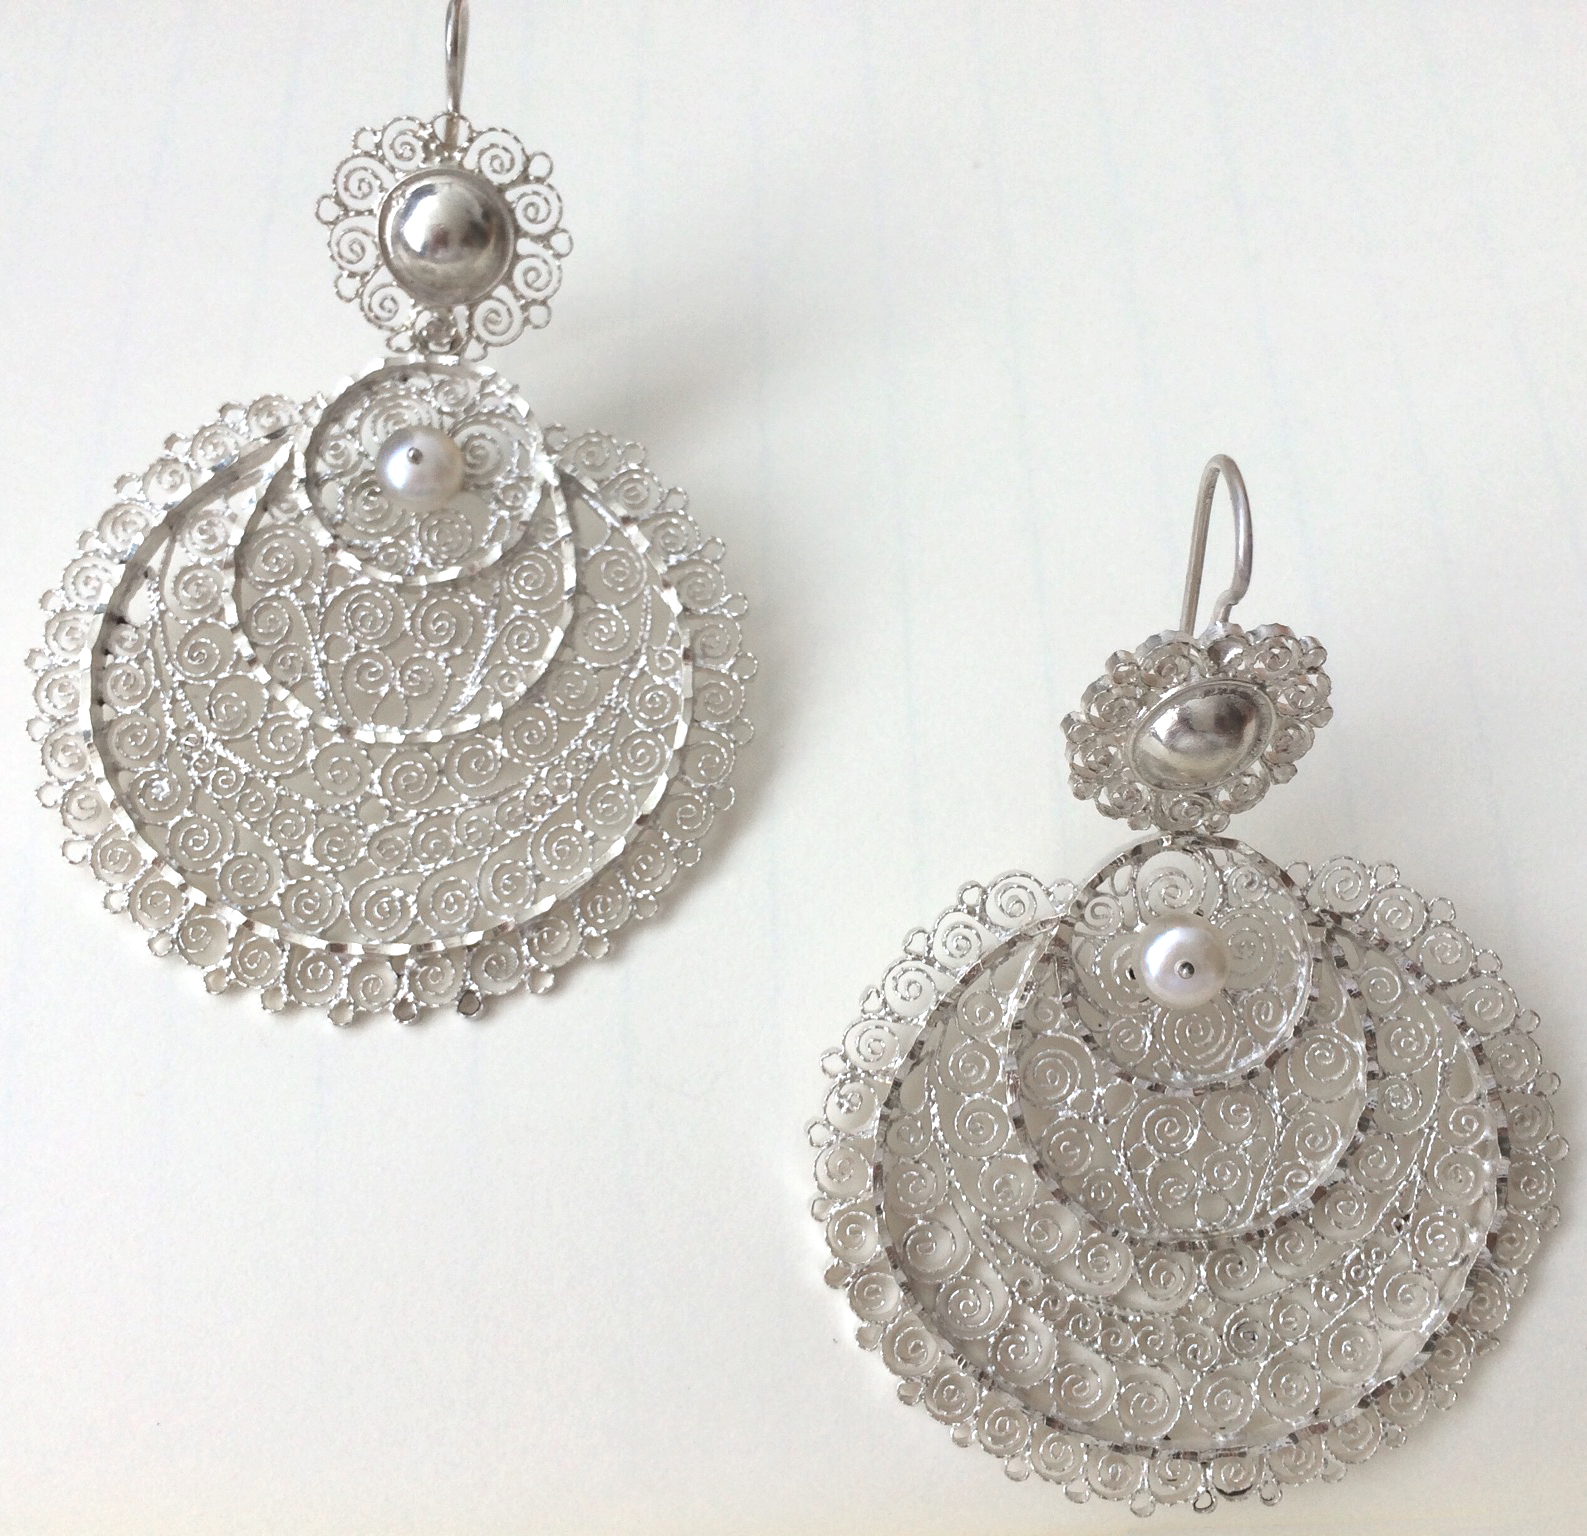 earring earrings kai collections arrivals new products copy filigree buy silver shop